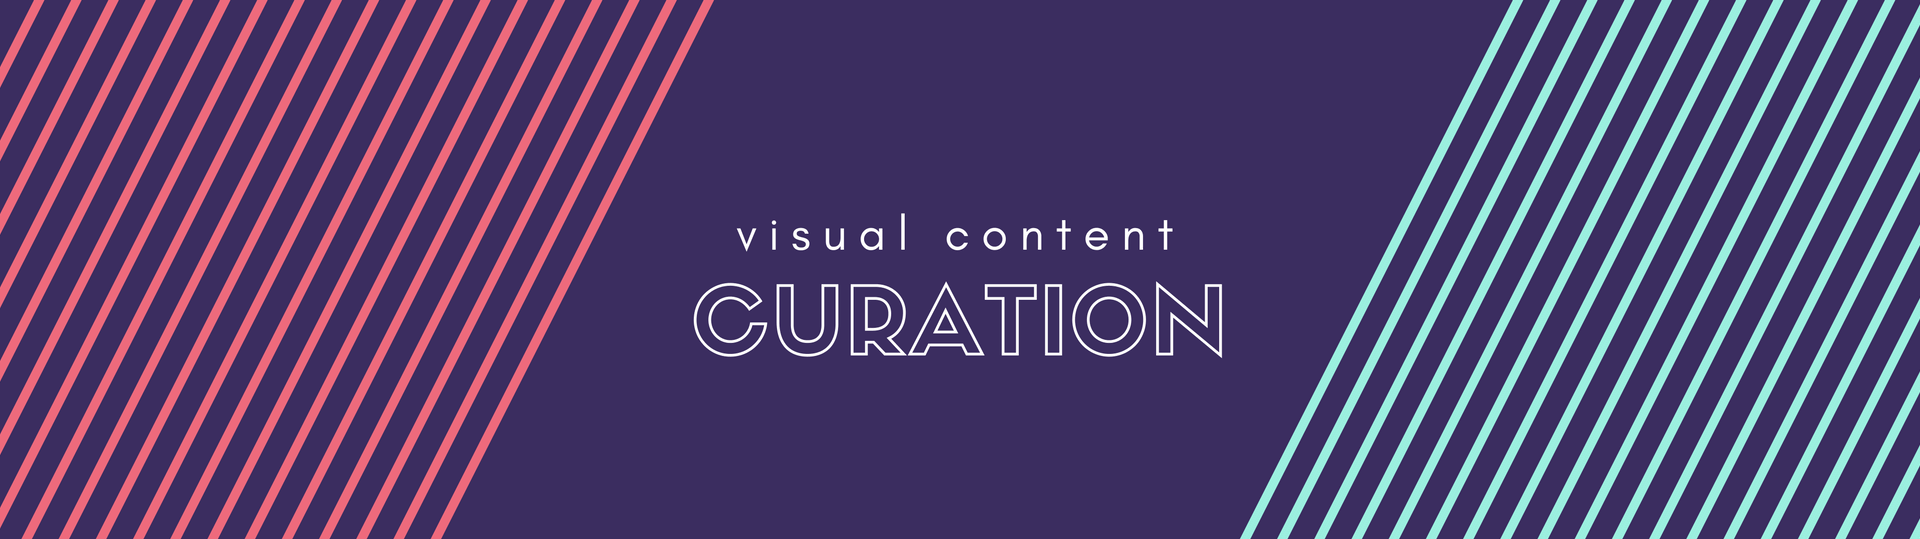 visual-content-curation